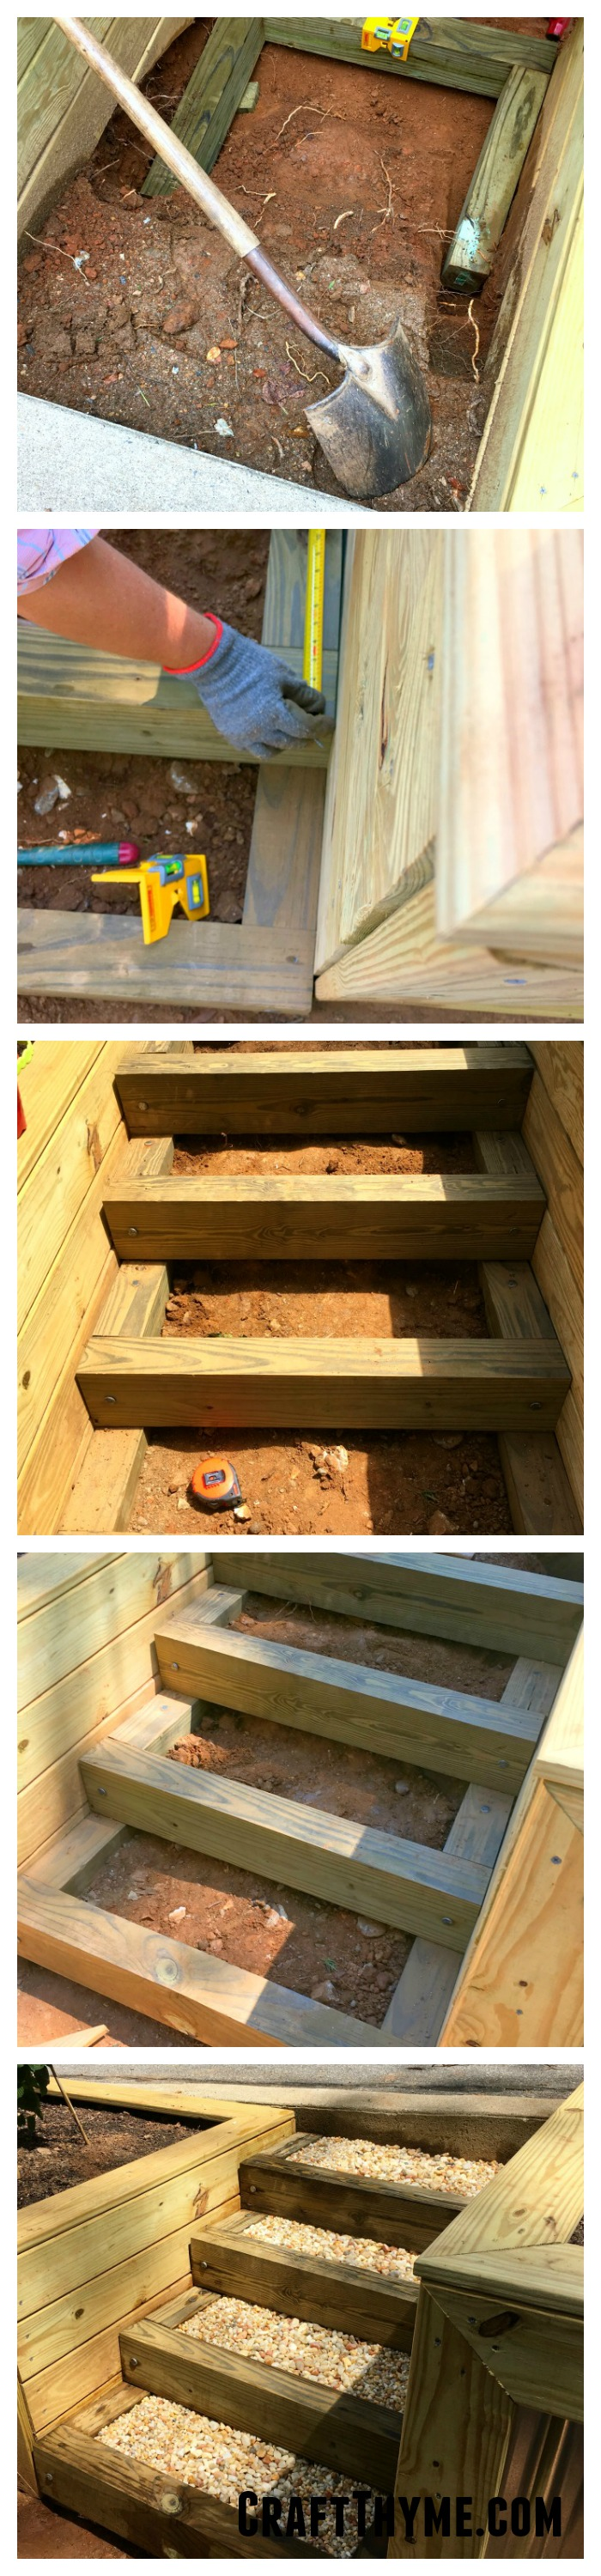 Tutorial on how to create timber and pea gravel stairs for your tiered garden.